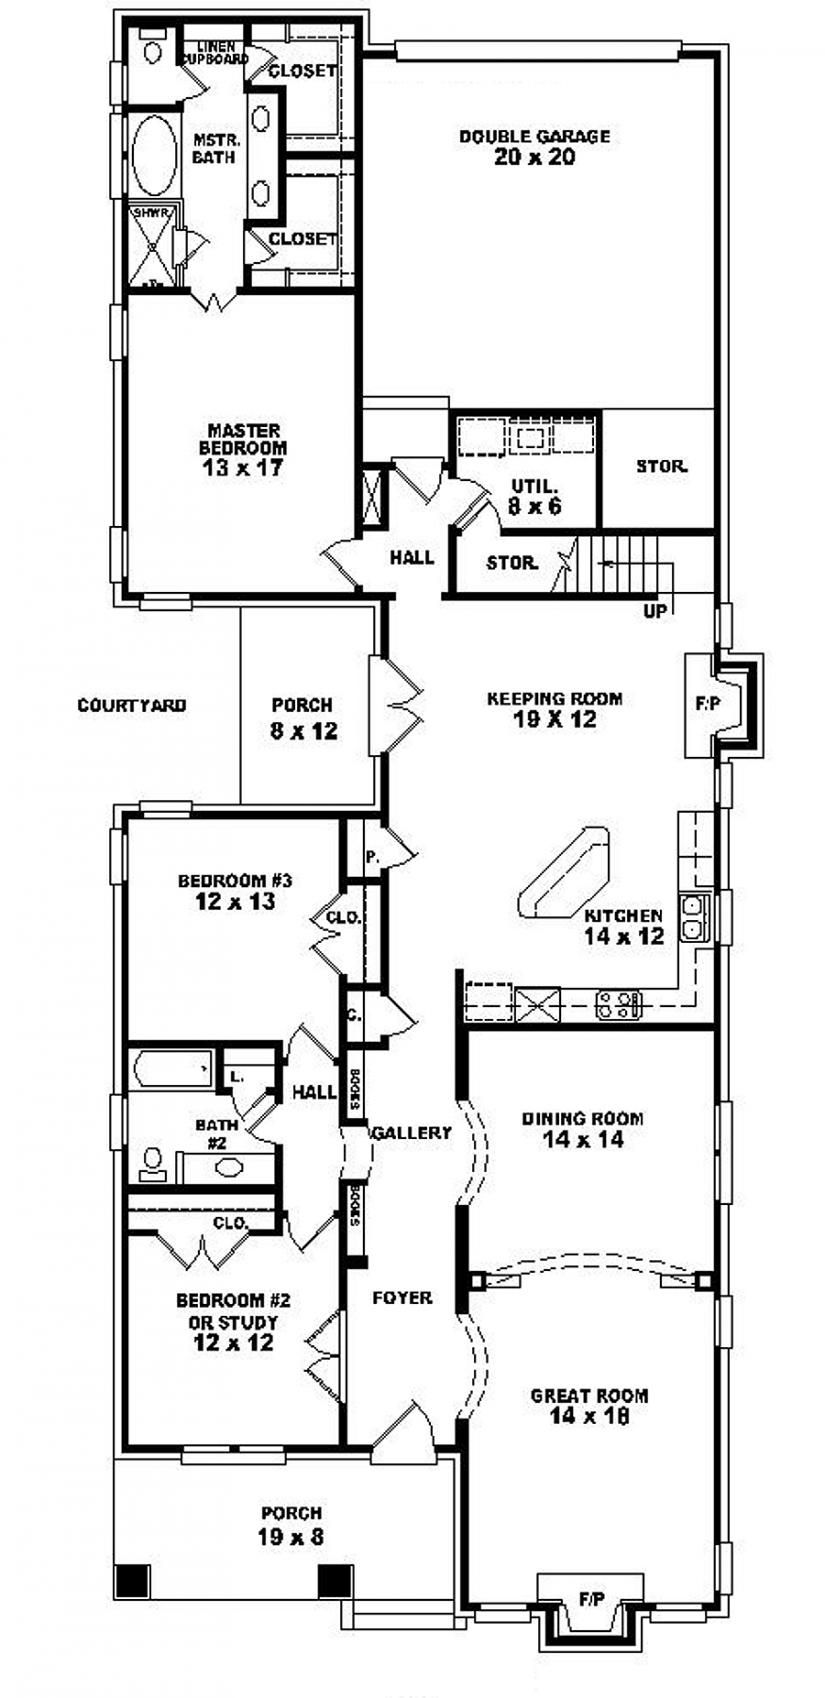 653962 one and a half story 2 bedroom 2 bath craftsman style house plan house plans floor plans home plans plan it at houseplanit com